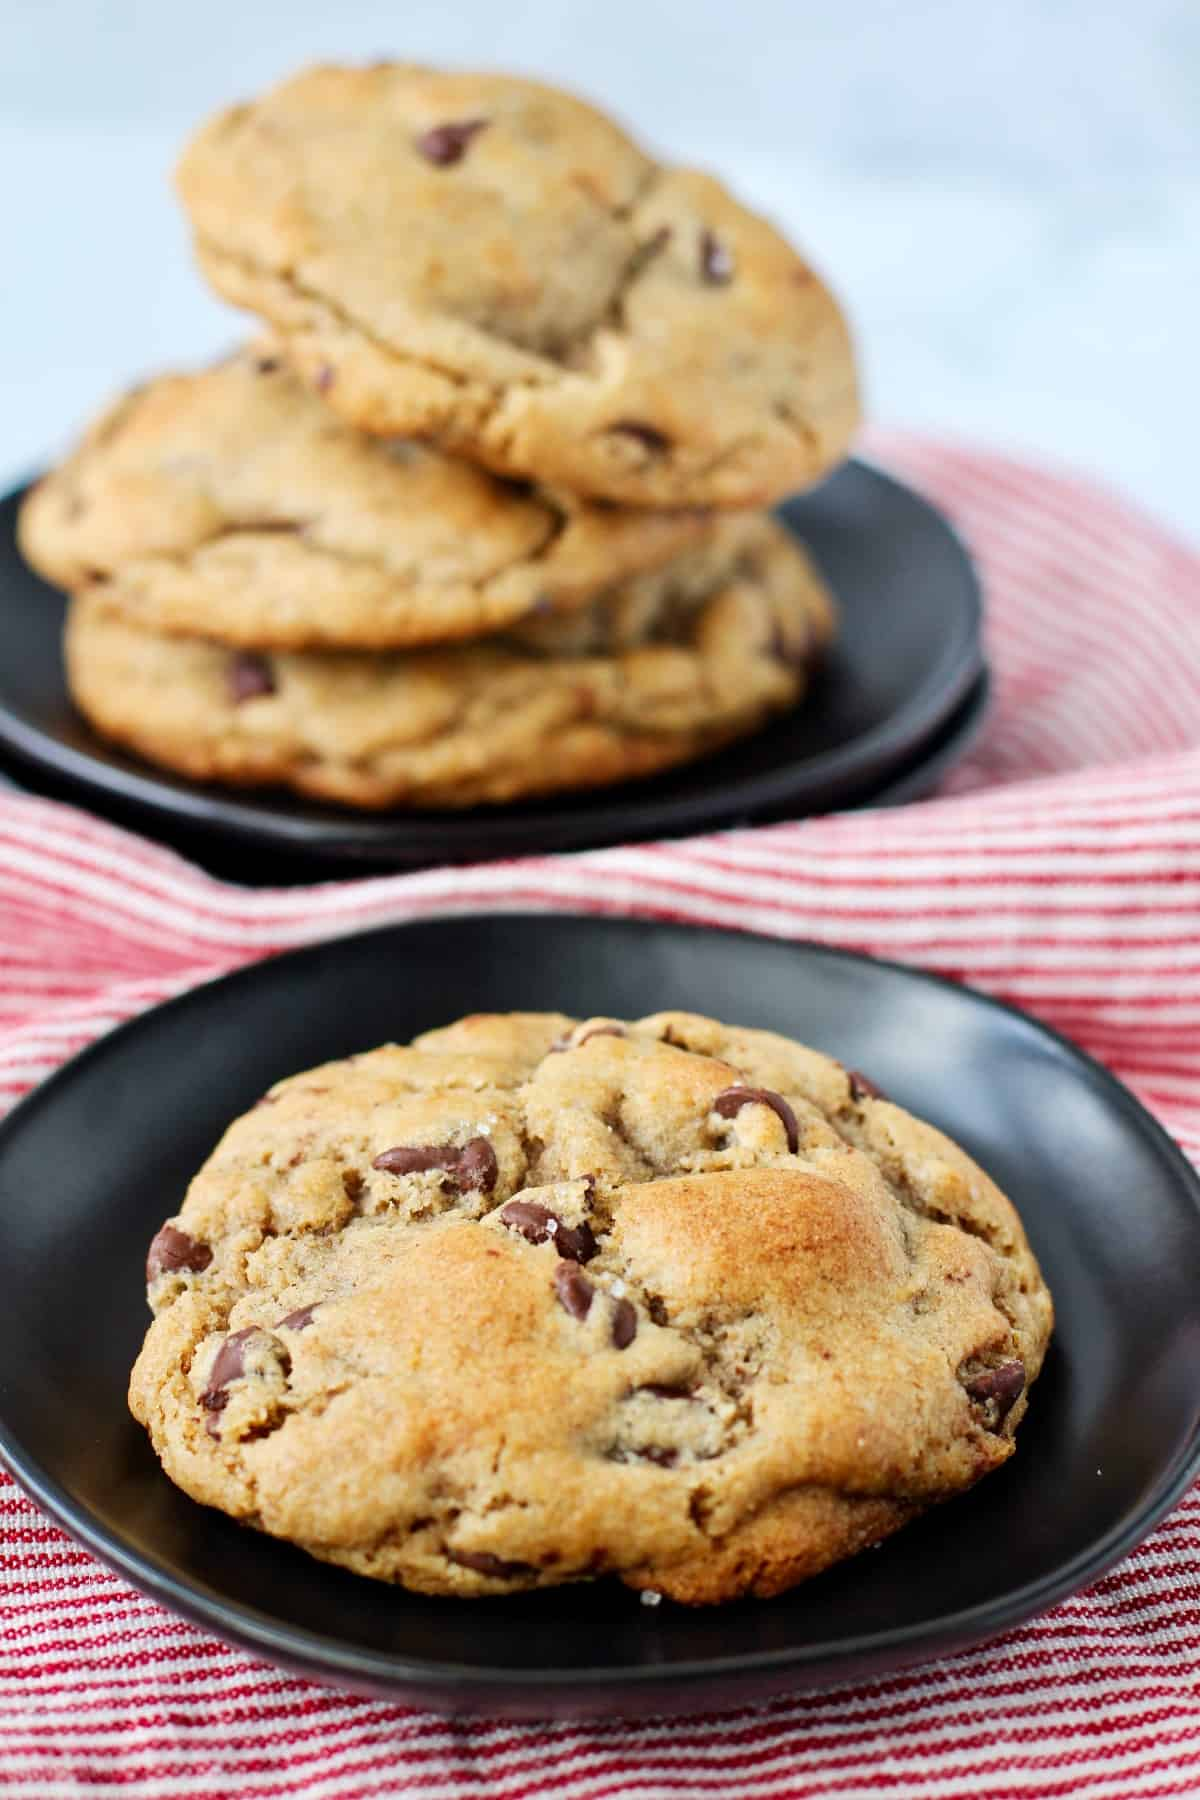 Sourdough Browned butter and Whole Wheat Chocolate Chip Cookies